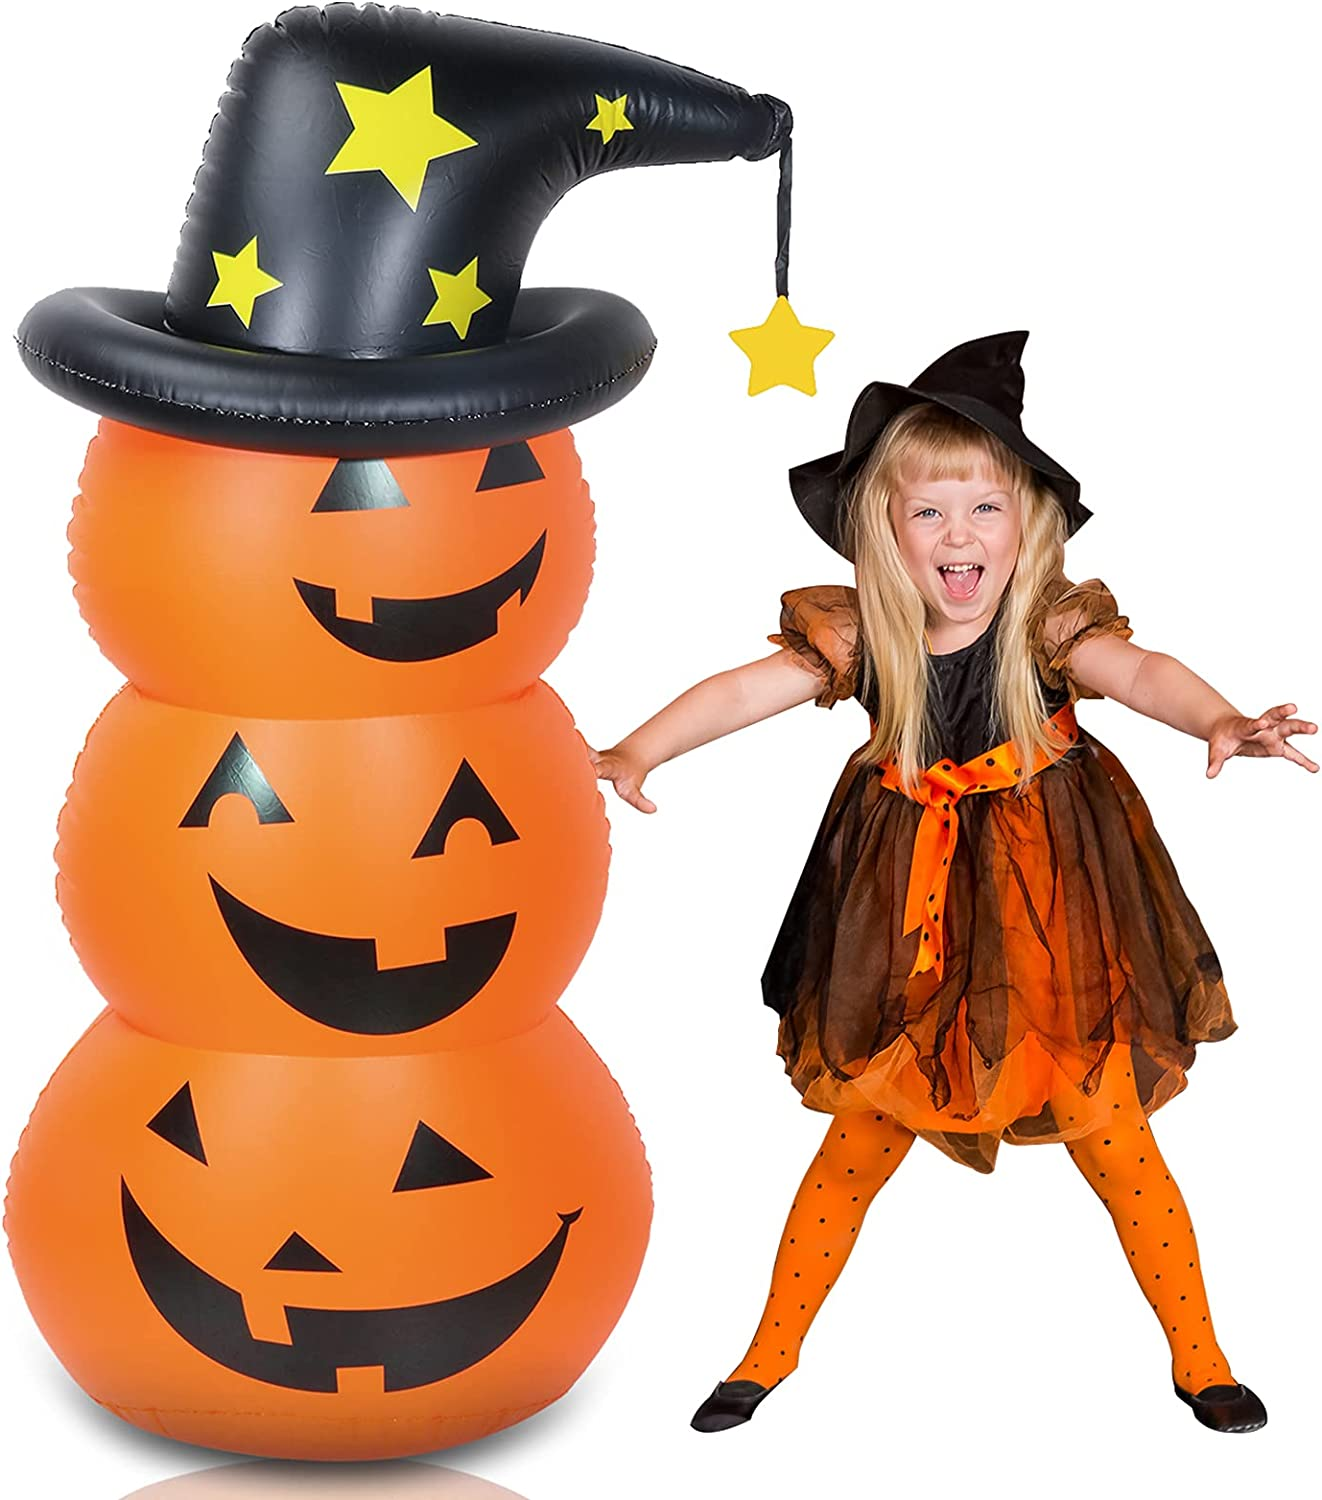 Halloween Decorations Inflatable Pumpkin Inflat Ft Los Angeles Mall 4.6 Sales for sale Tumbler